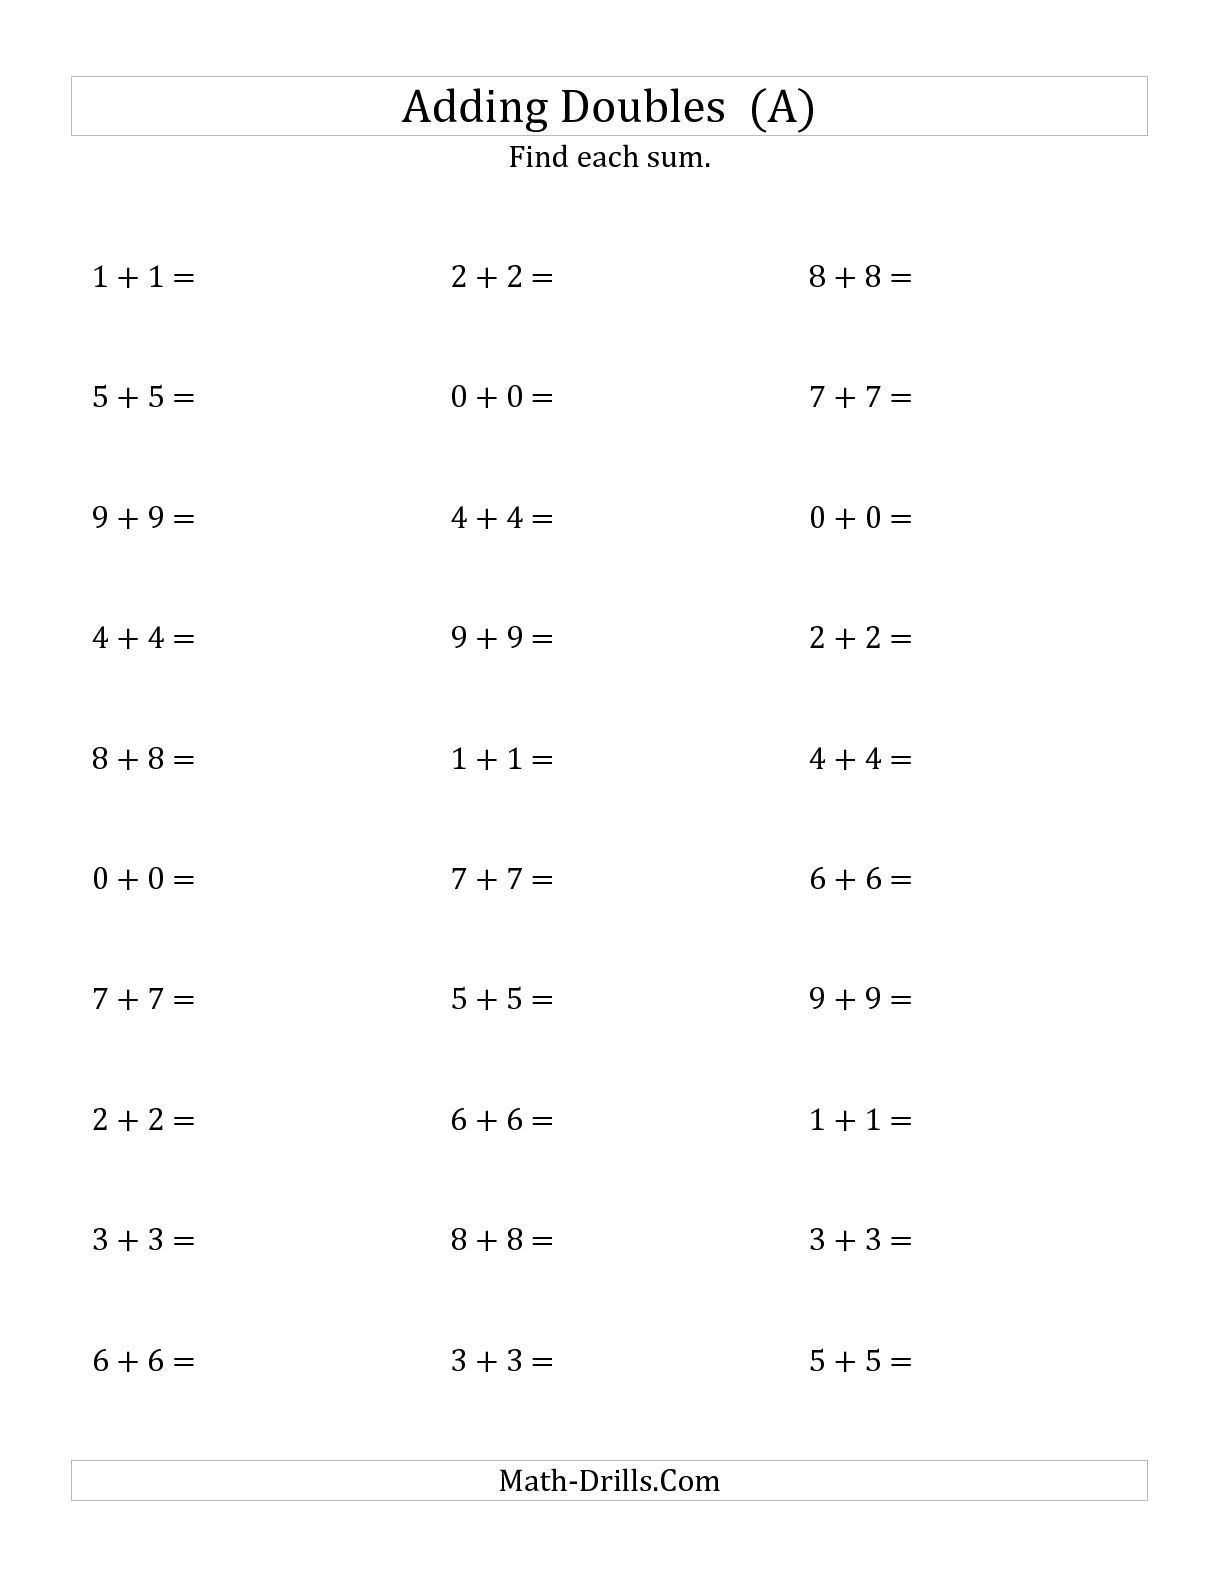 Adding Rational Numbers Worksheets The Adding Doubles